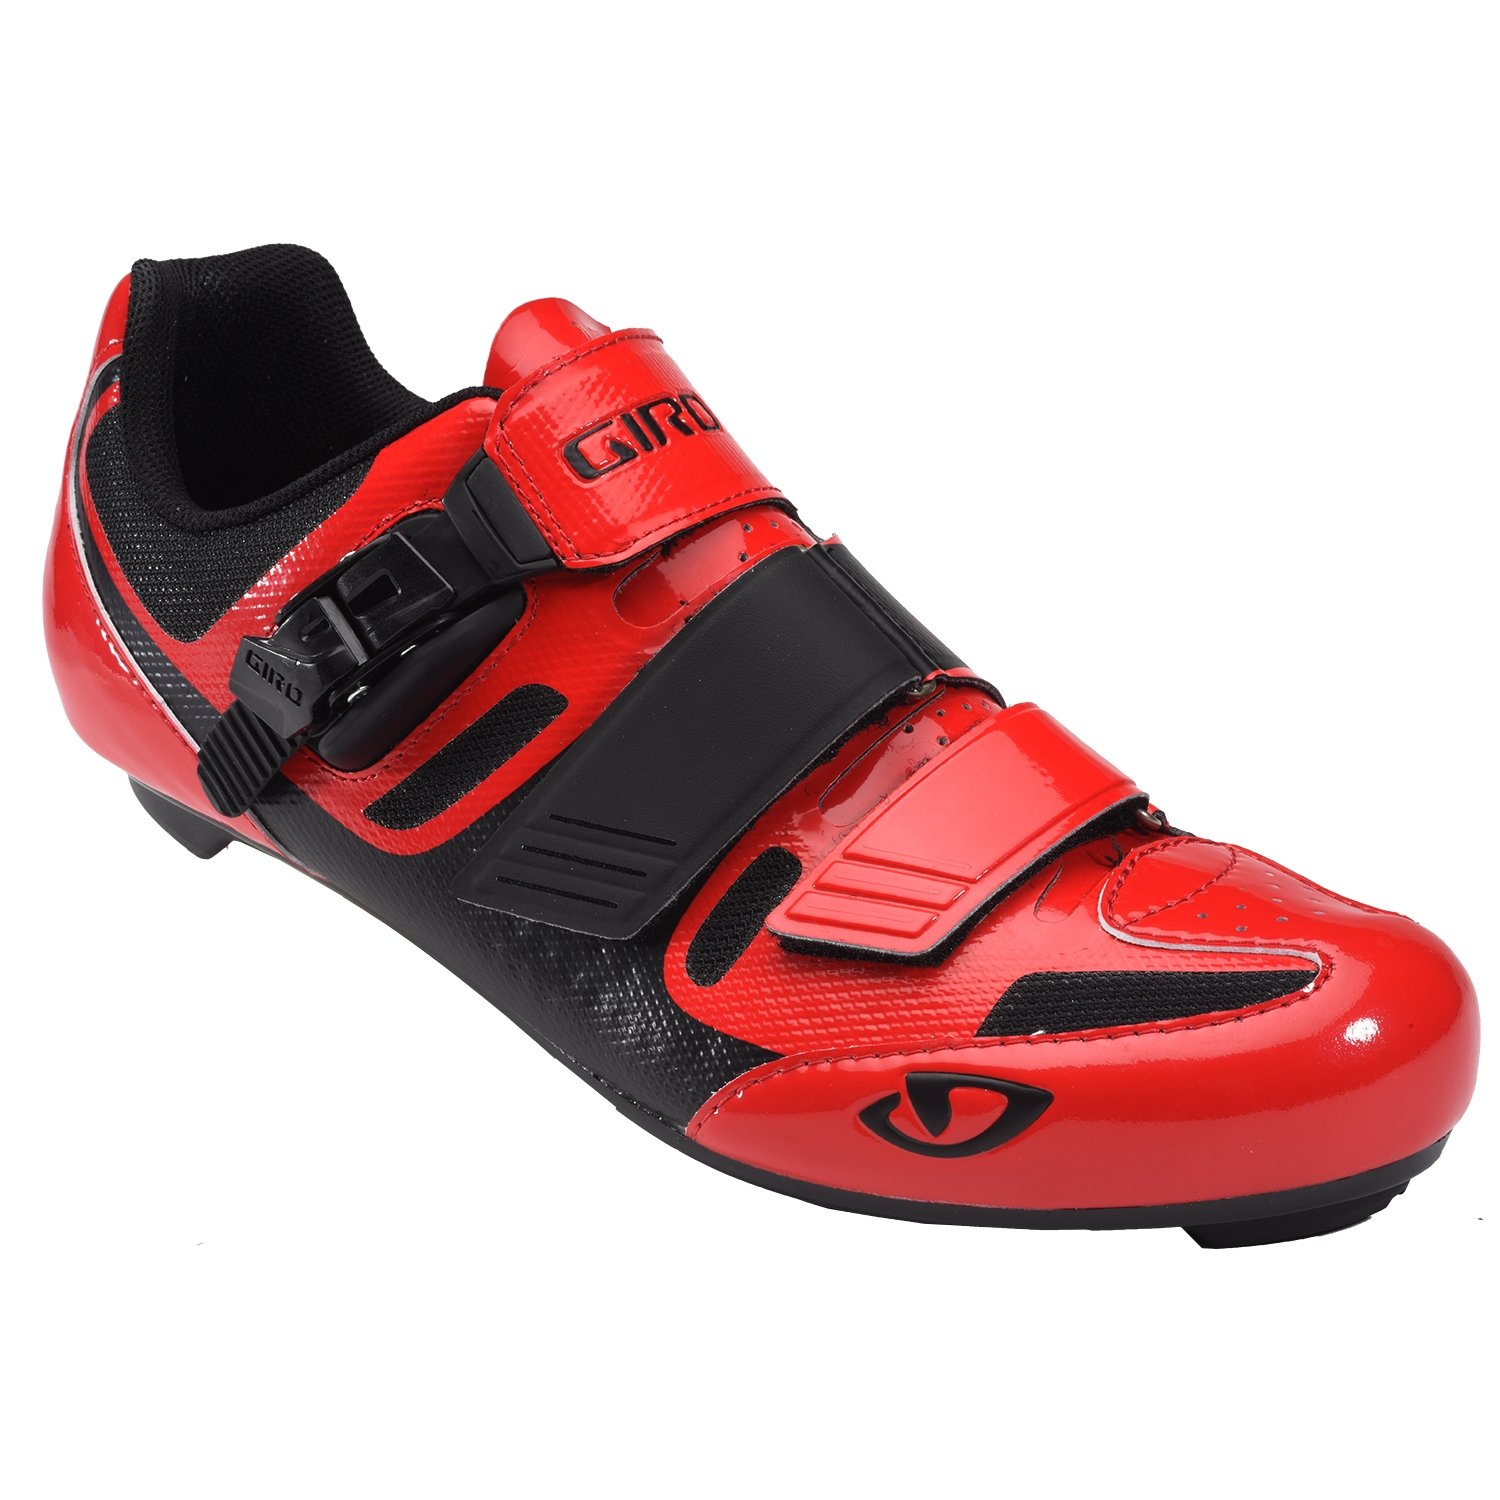 Giro Apeckx II Cycling Shoes Bright Red/Black 44.5